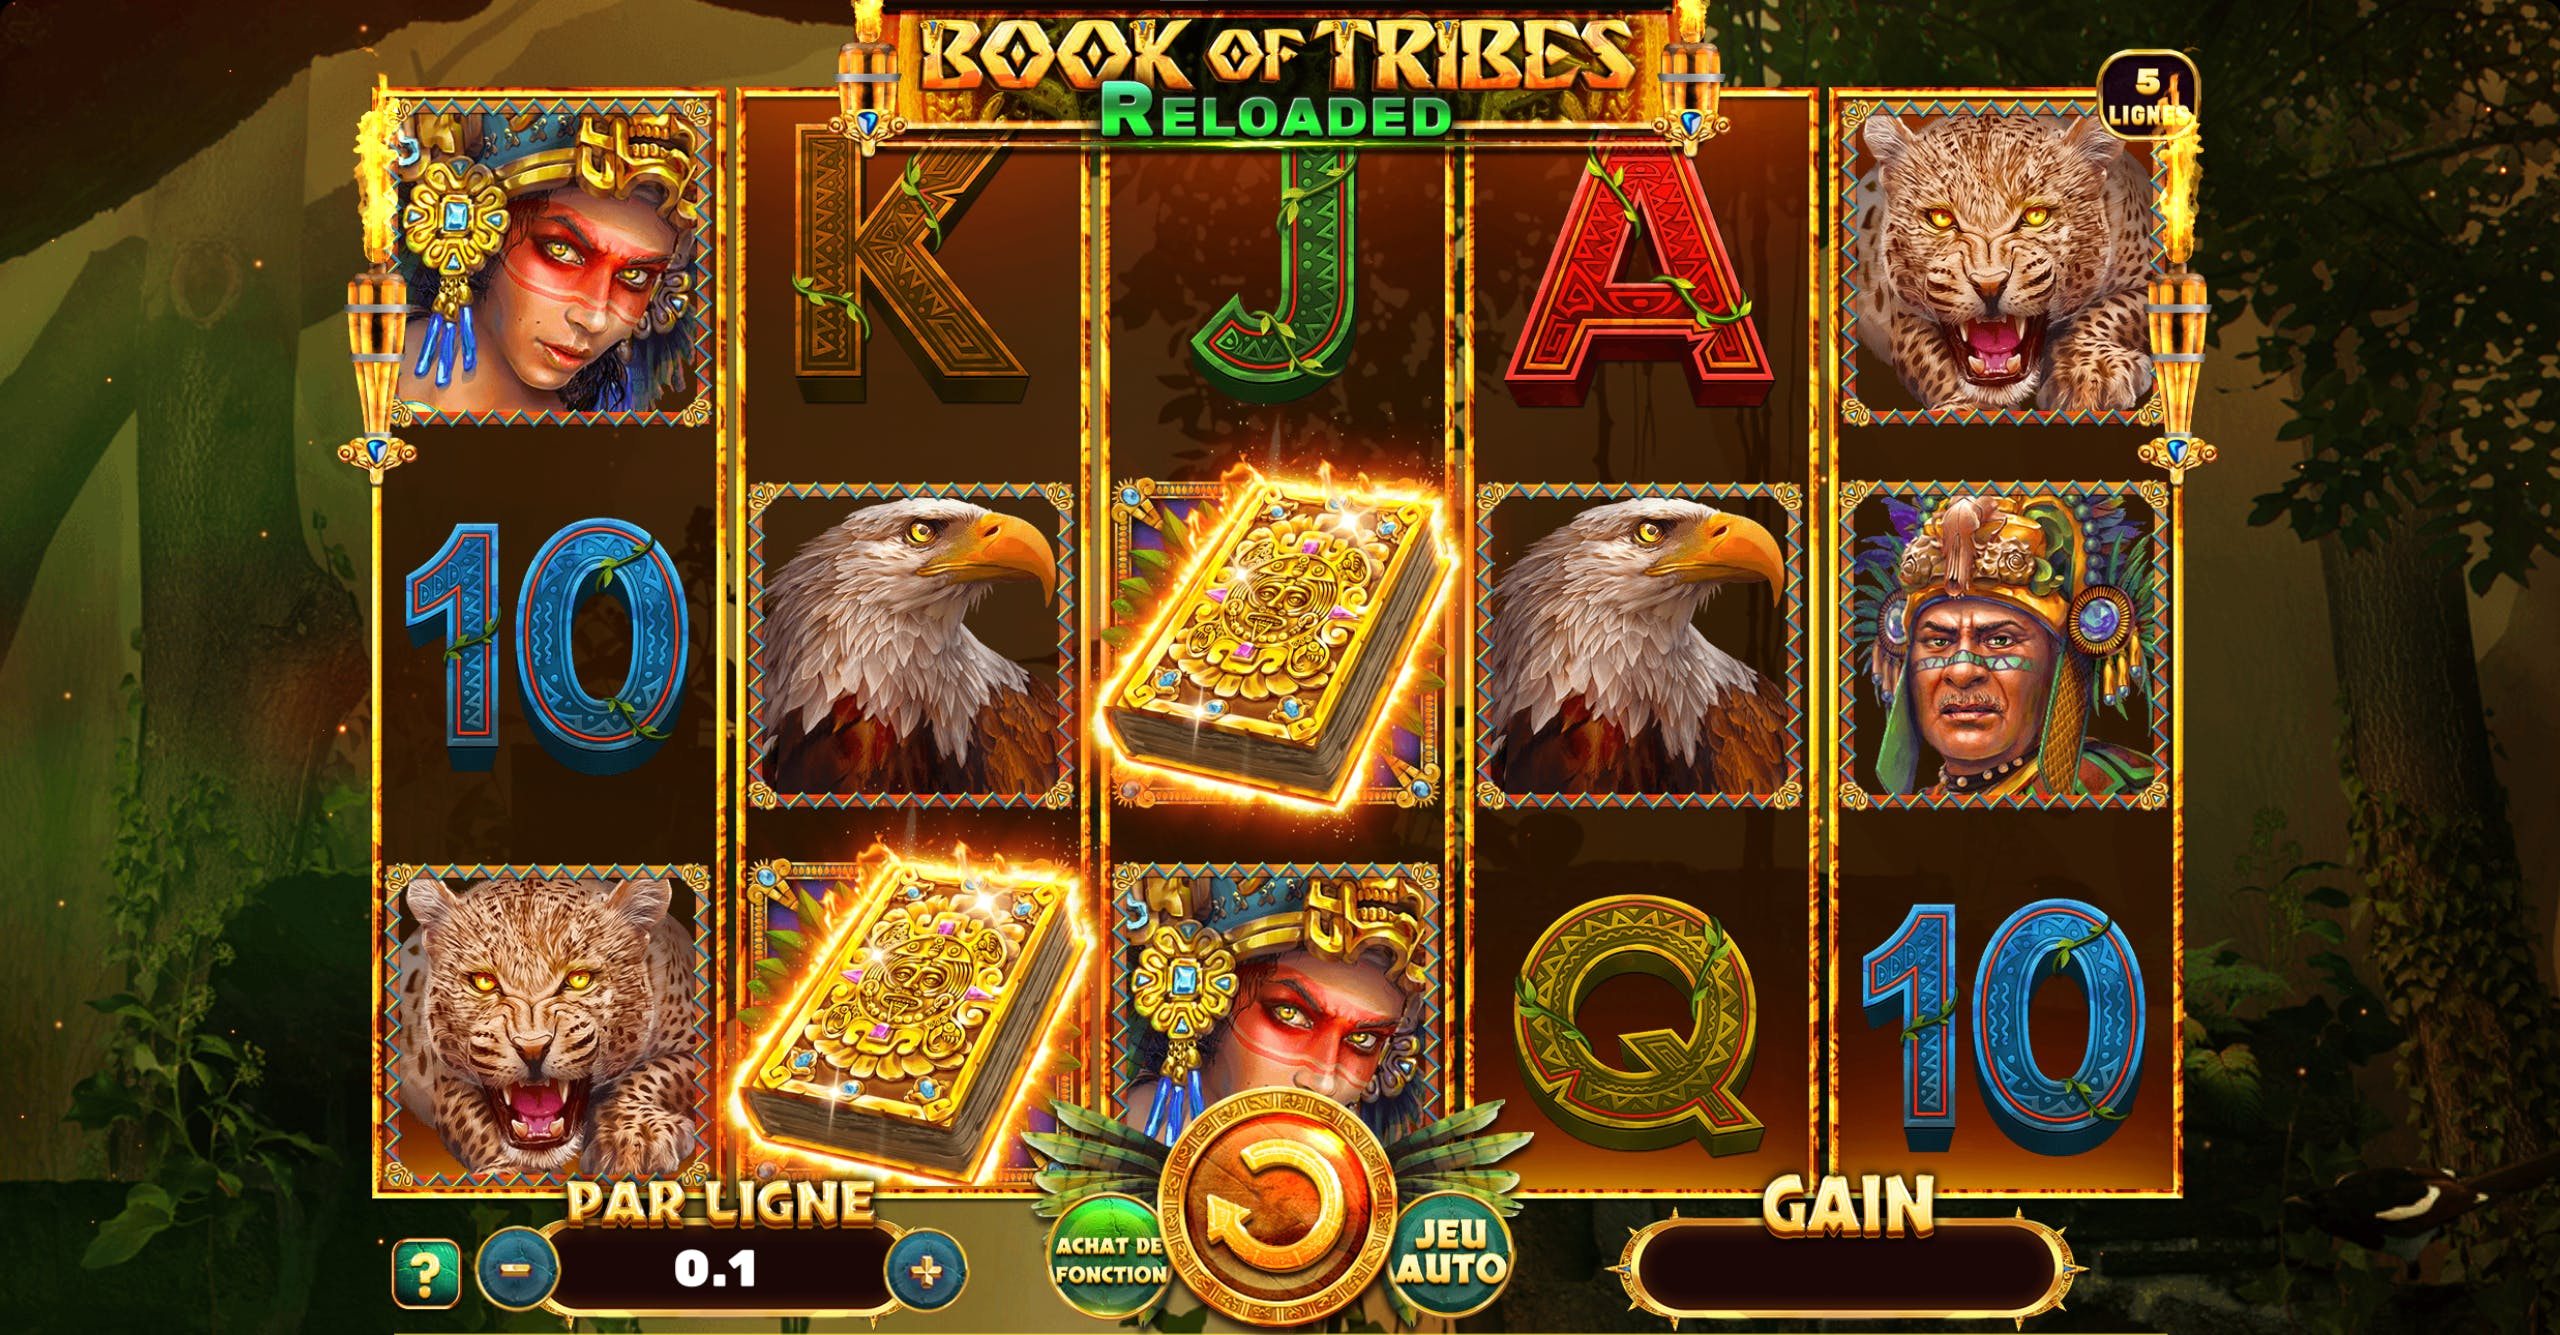 book of tribes reloaded gameplay spinomenal